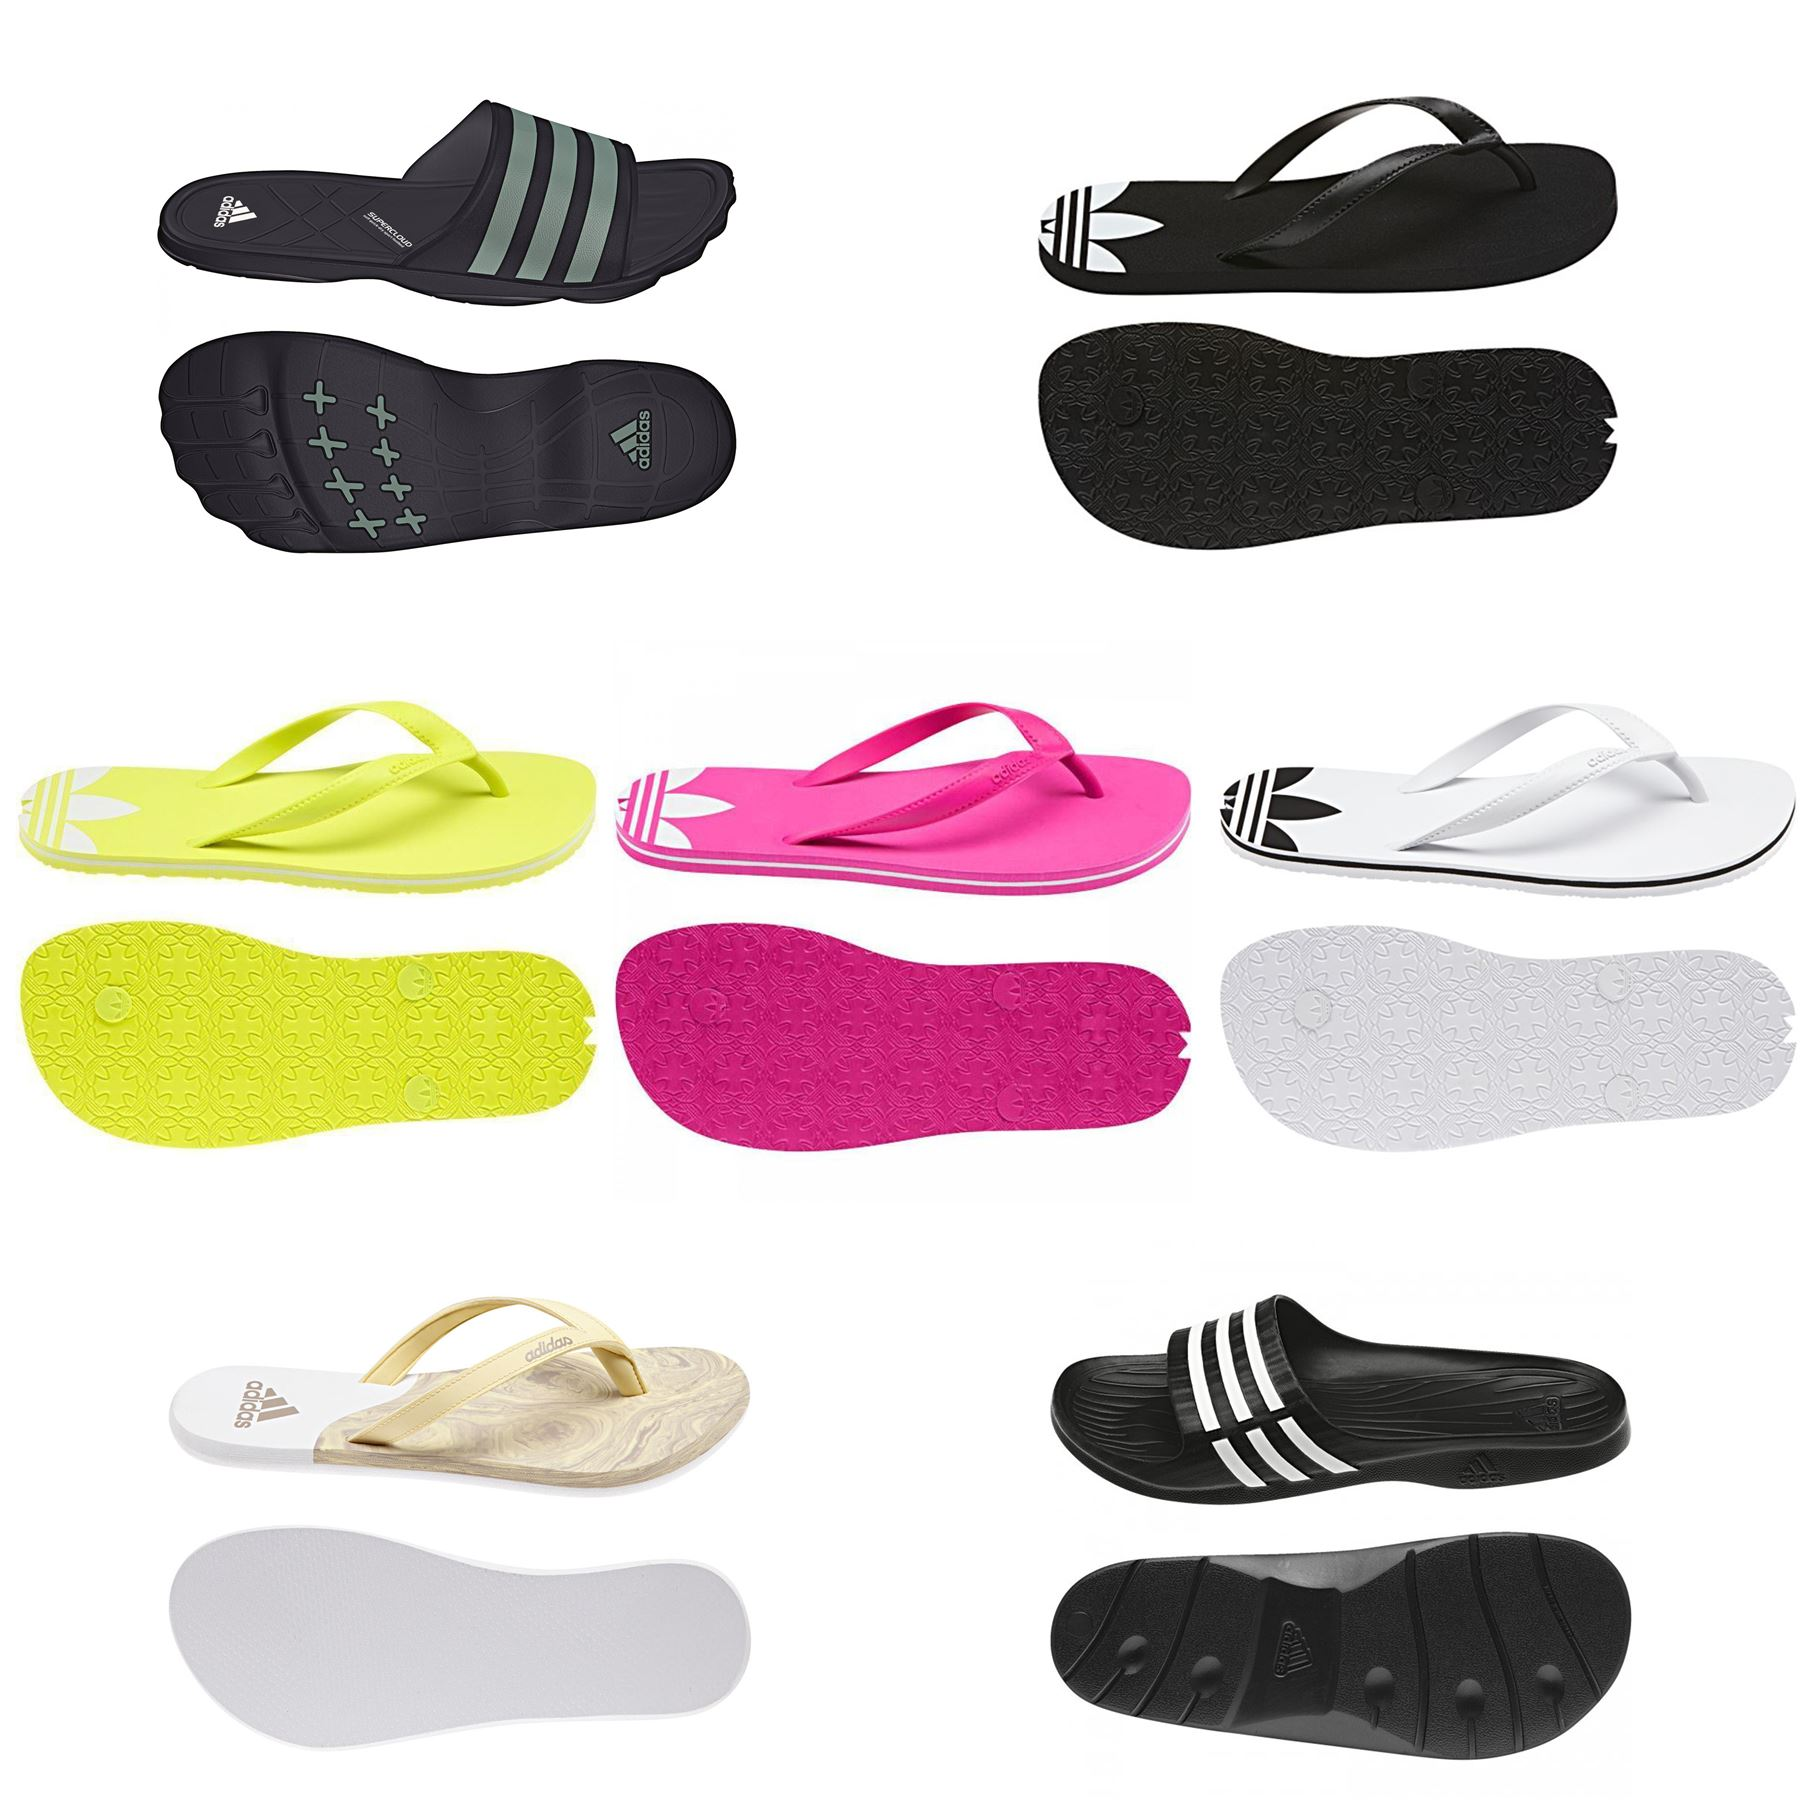 4872410e3bdc6 Details about adidas ORIGINALS FLIP FLOPS SANDALS SLIDERS ADI SUN POOL BEACH  HOLIDAYS THONGS